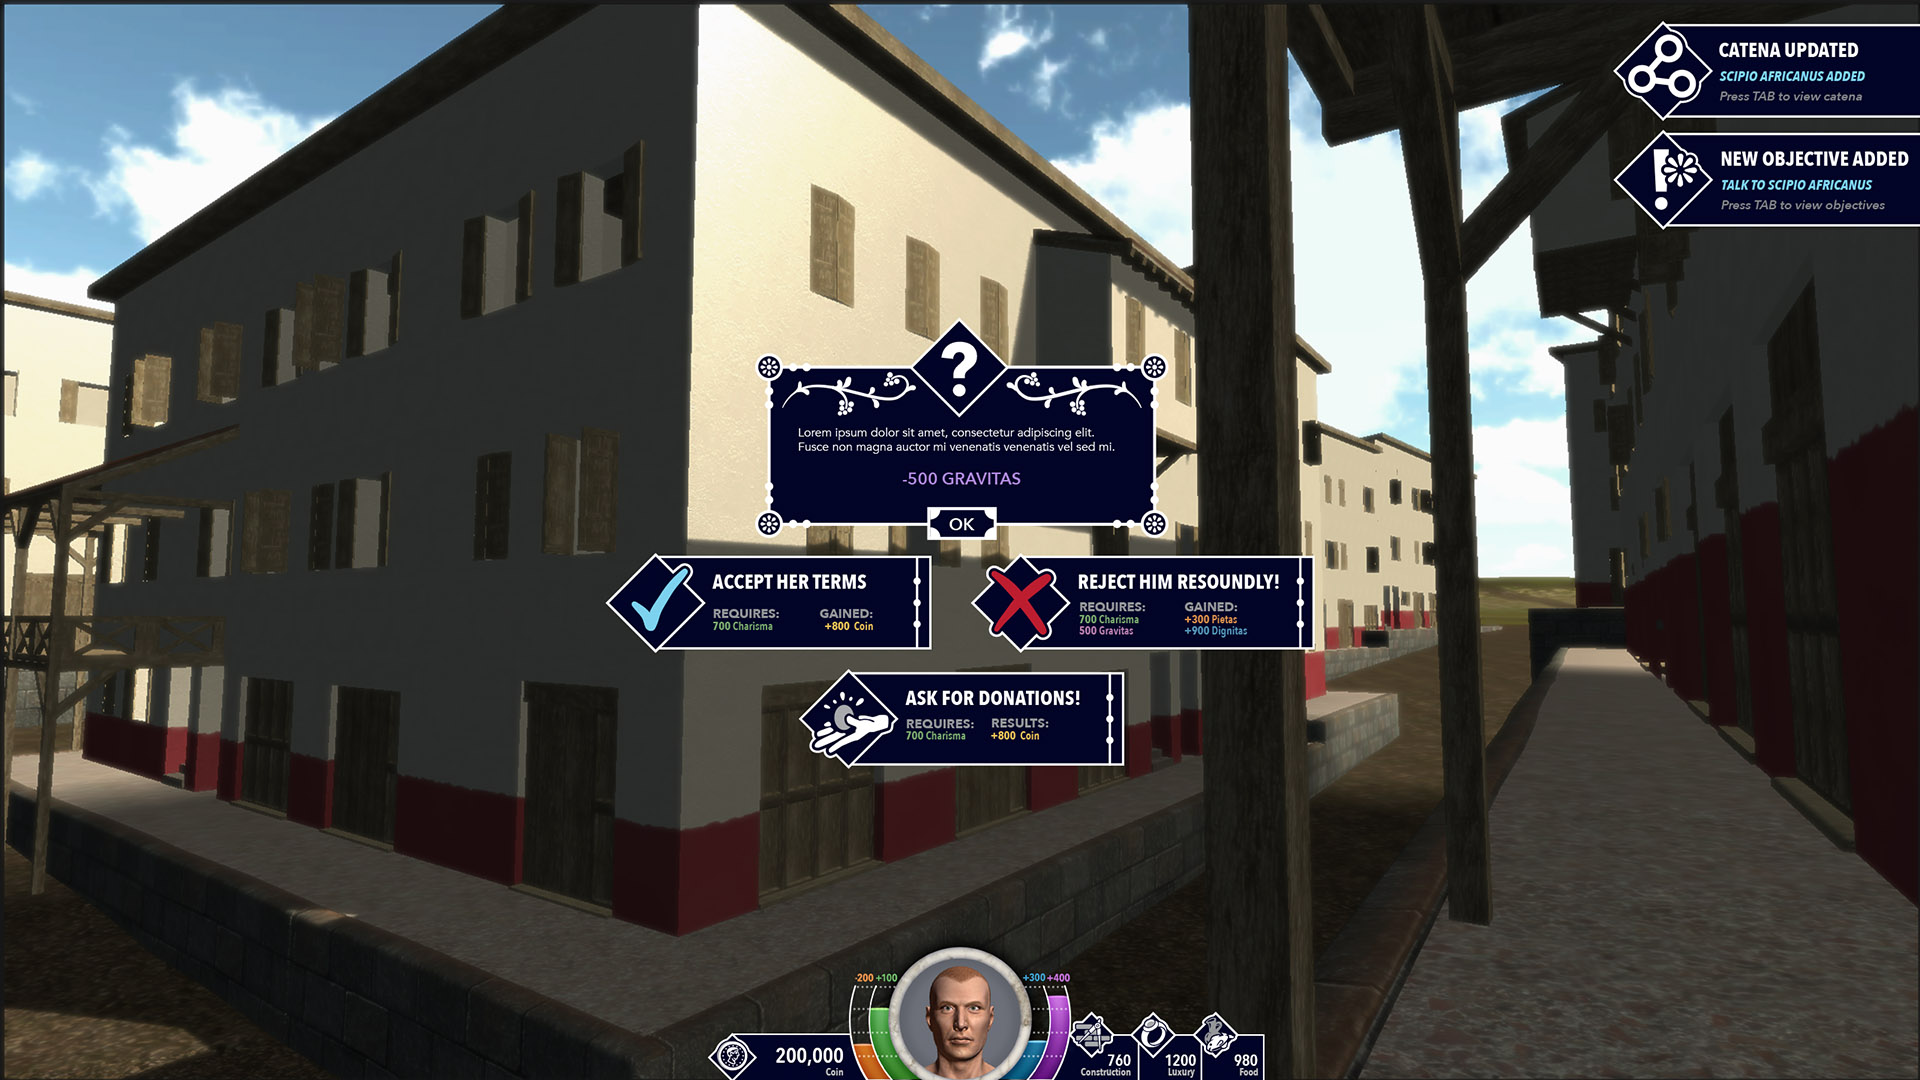 A mockup of several elements displayed during first-person gameplay. Notifications are displayed on the top-right and player decisions are presented via dialog boxes in the center.